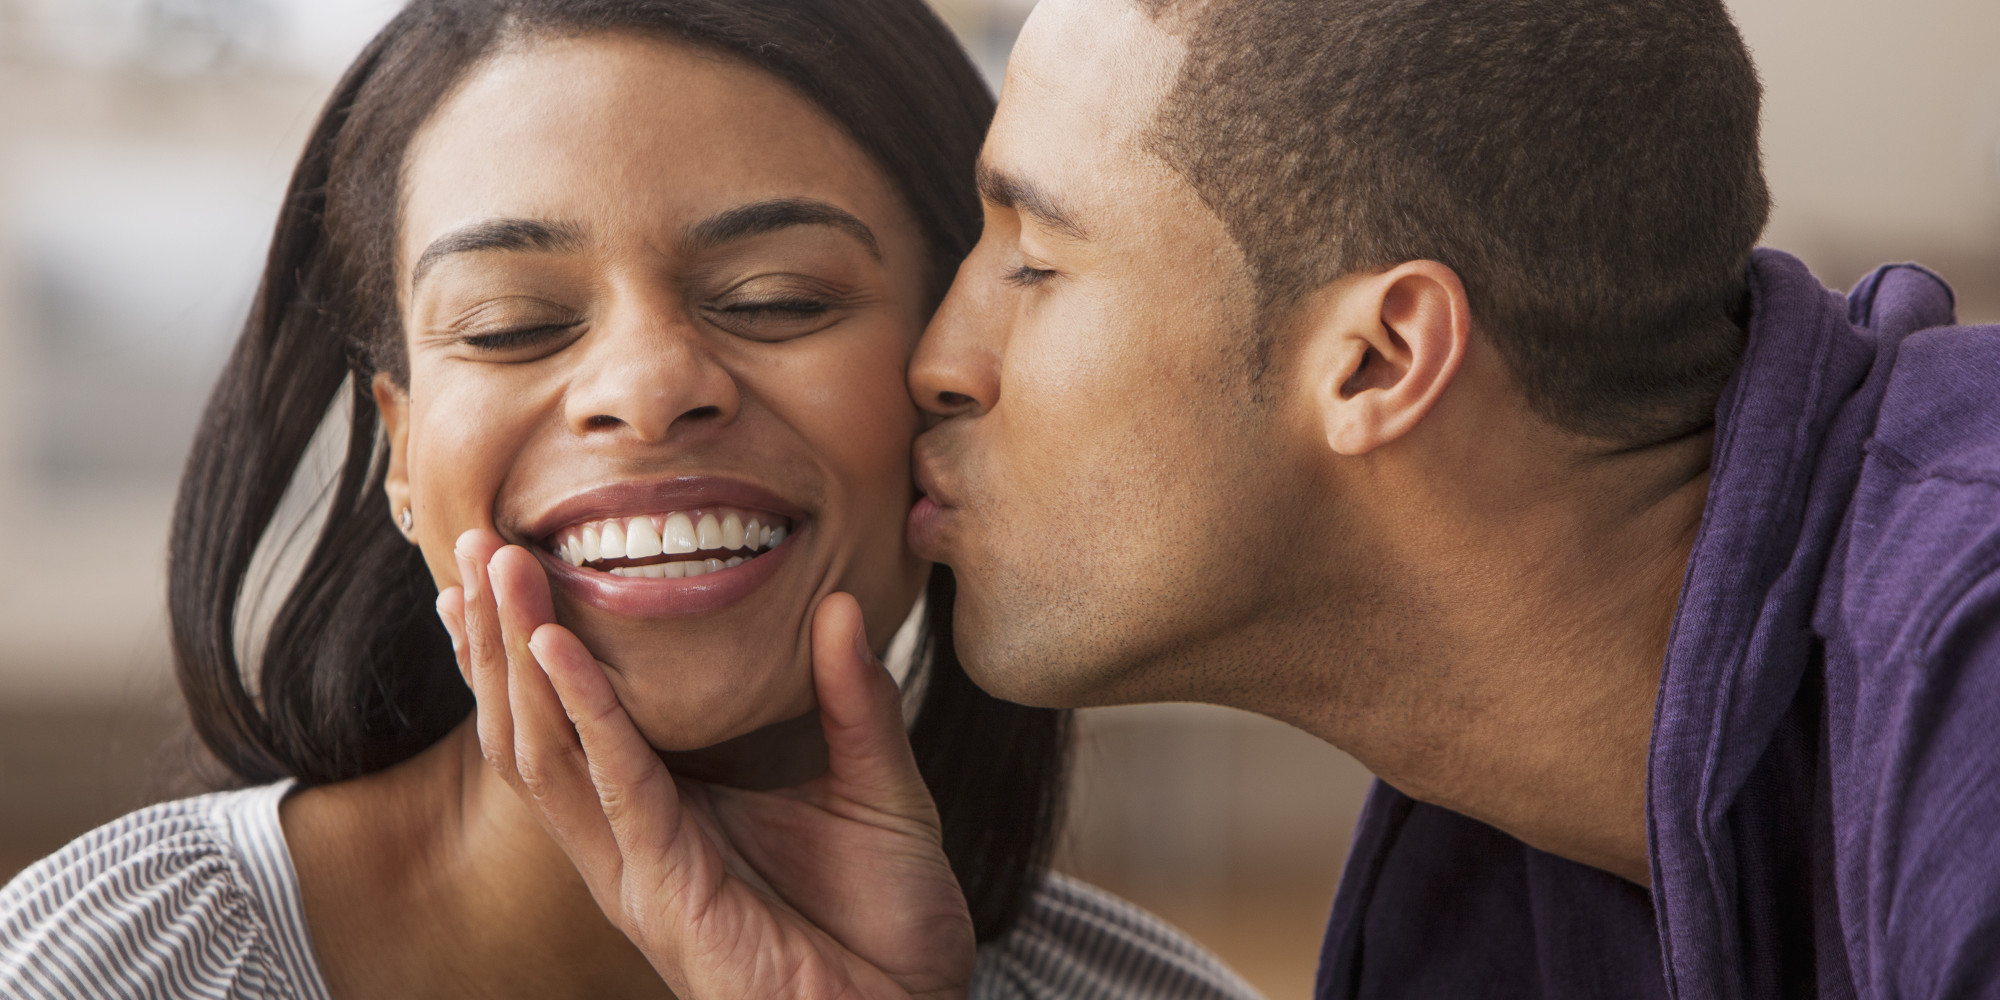 Awesome reasons why kissing should be an everyday affair